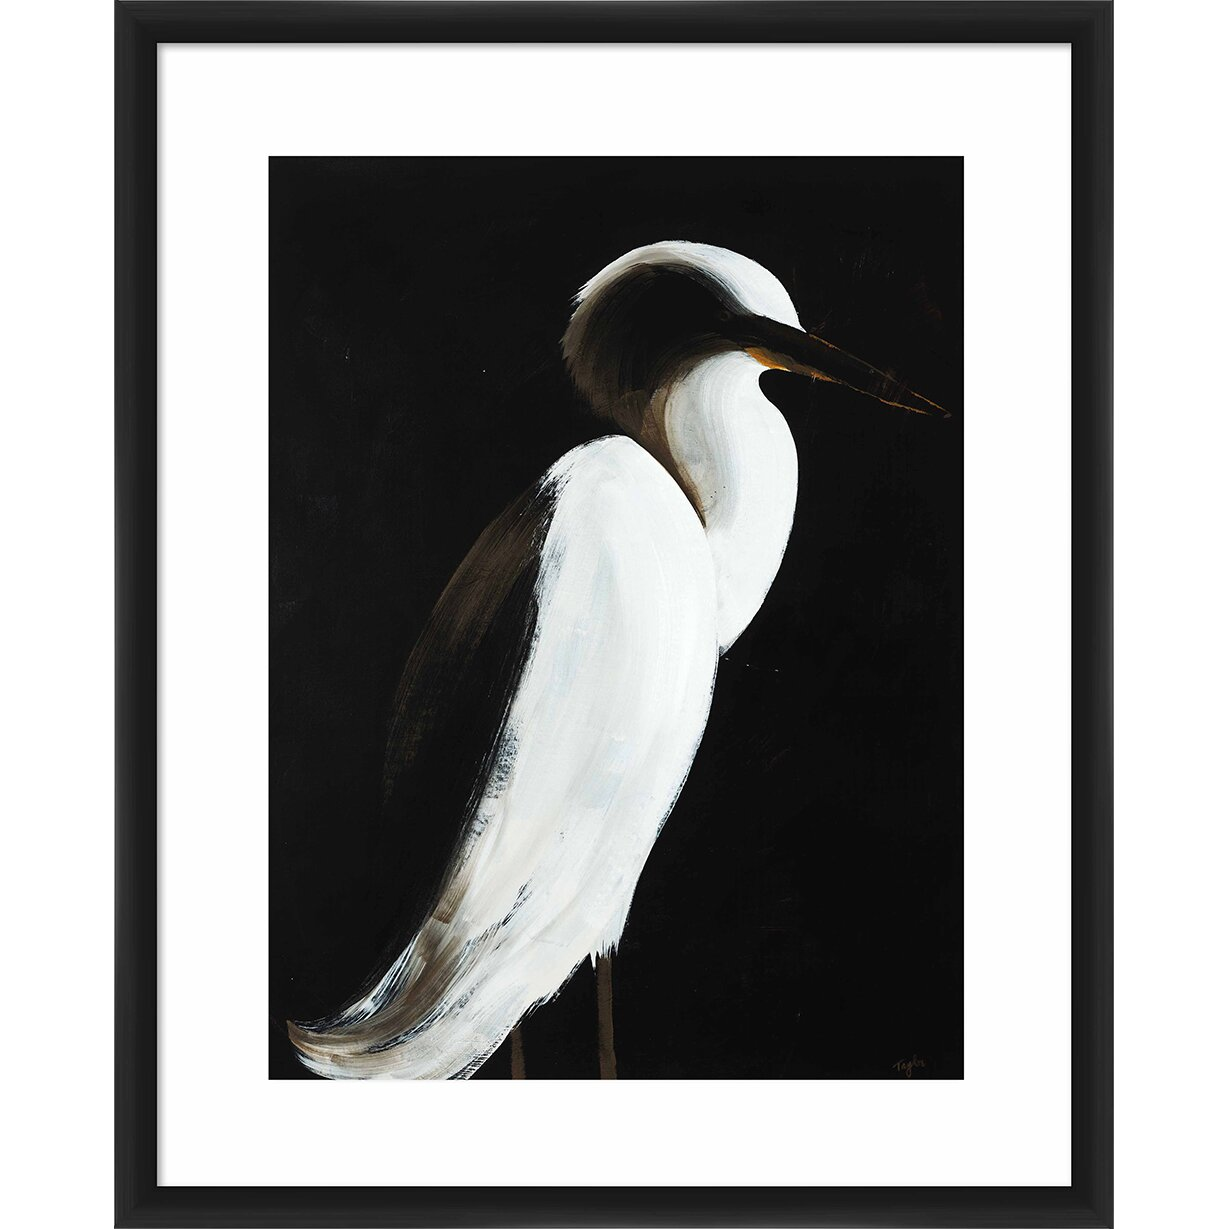 Ptm images 39 white heron 39 framed painting print reviews for White heron paint